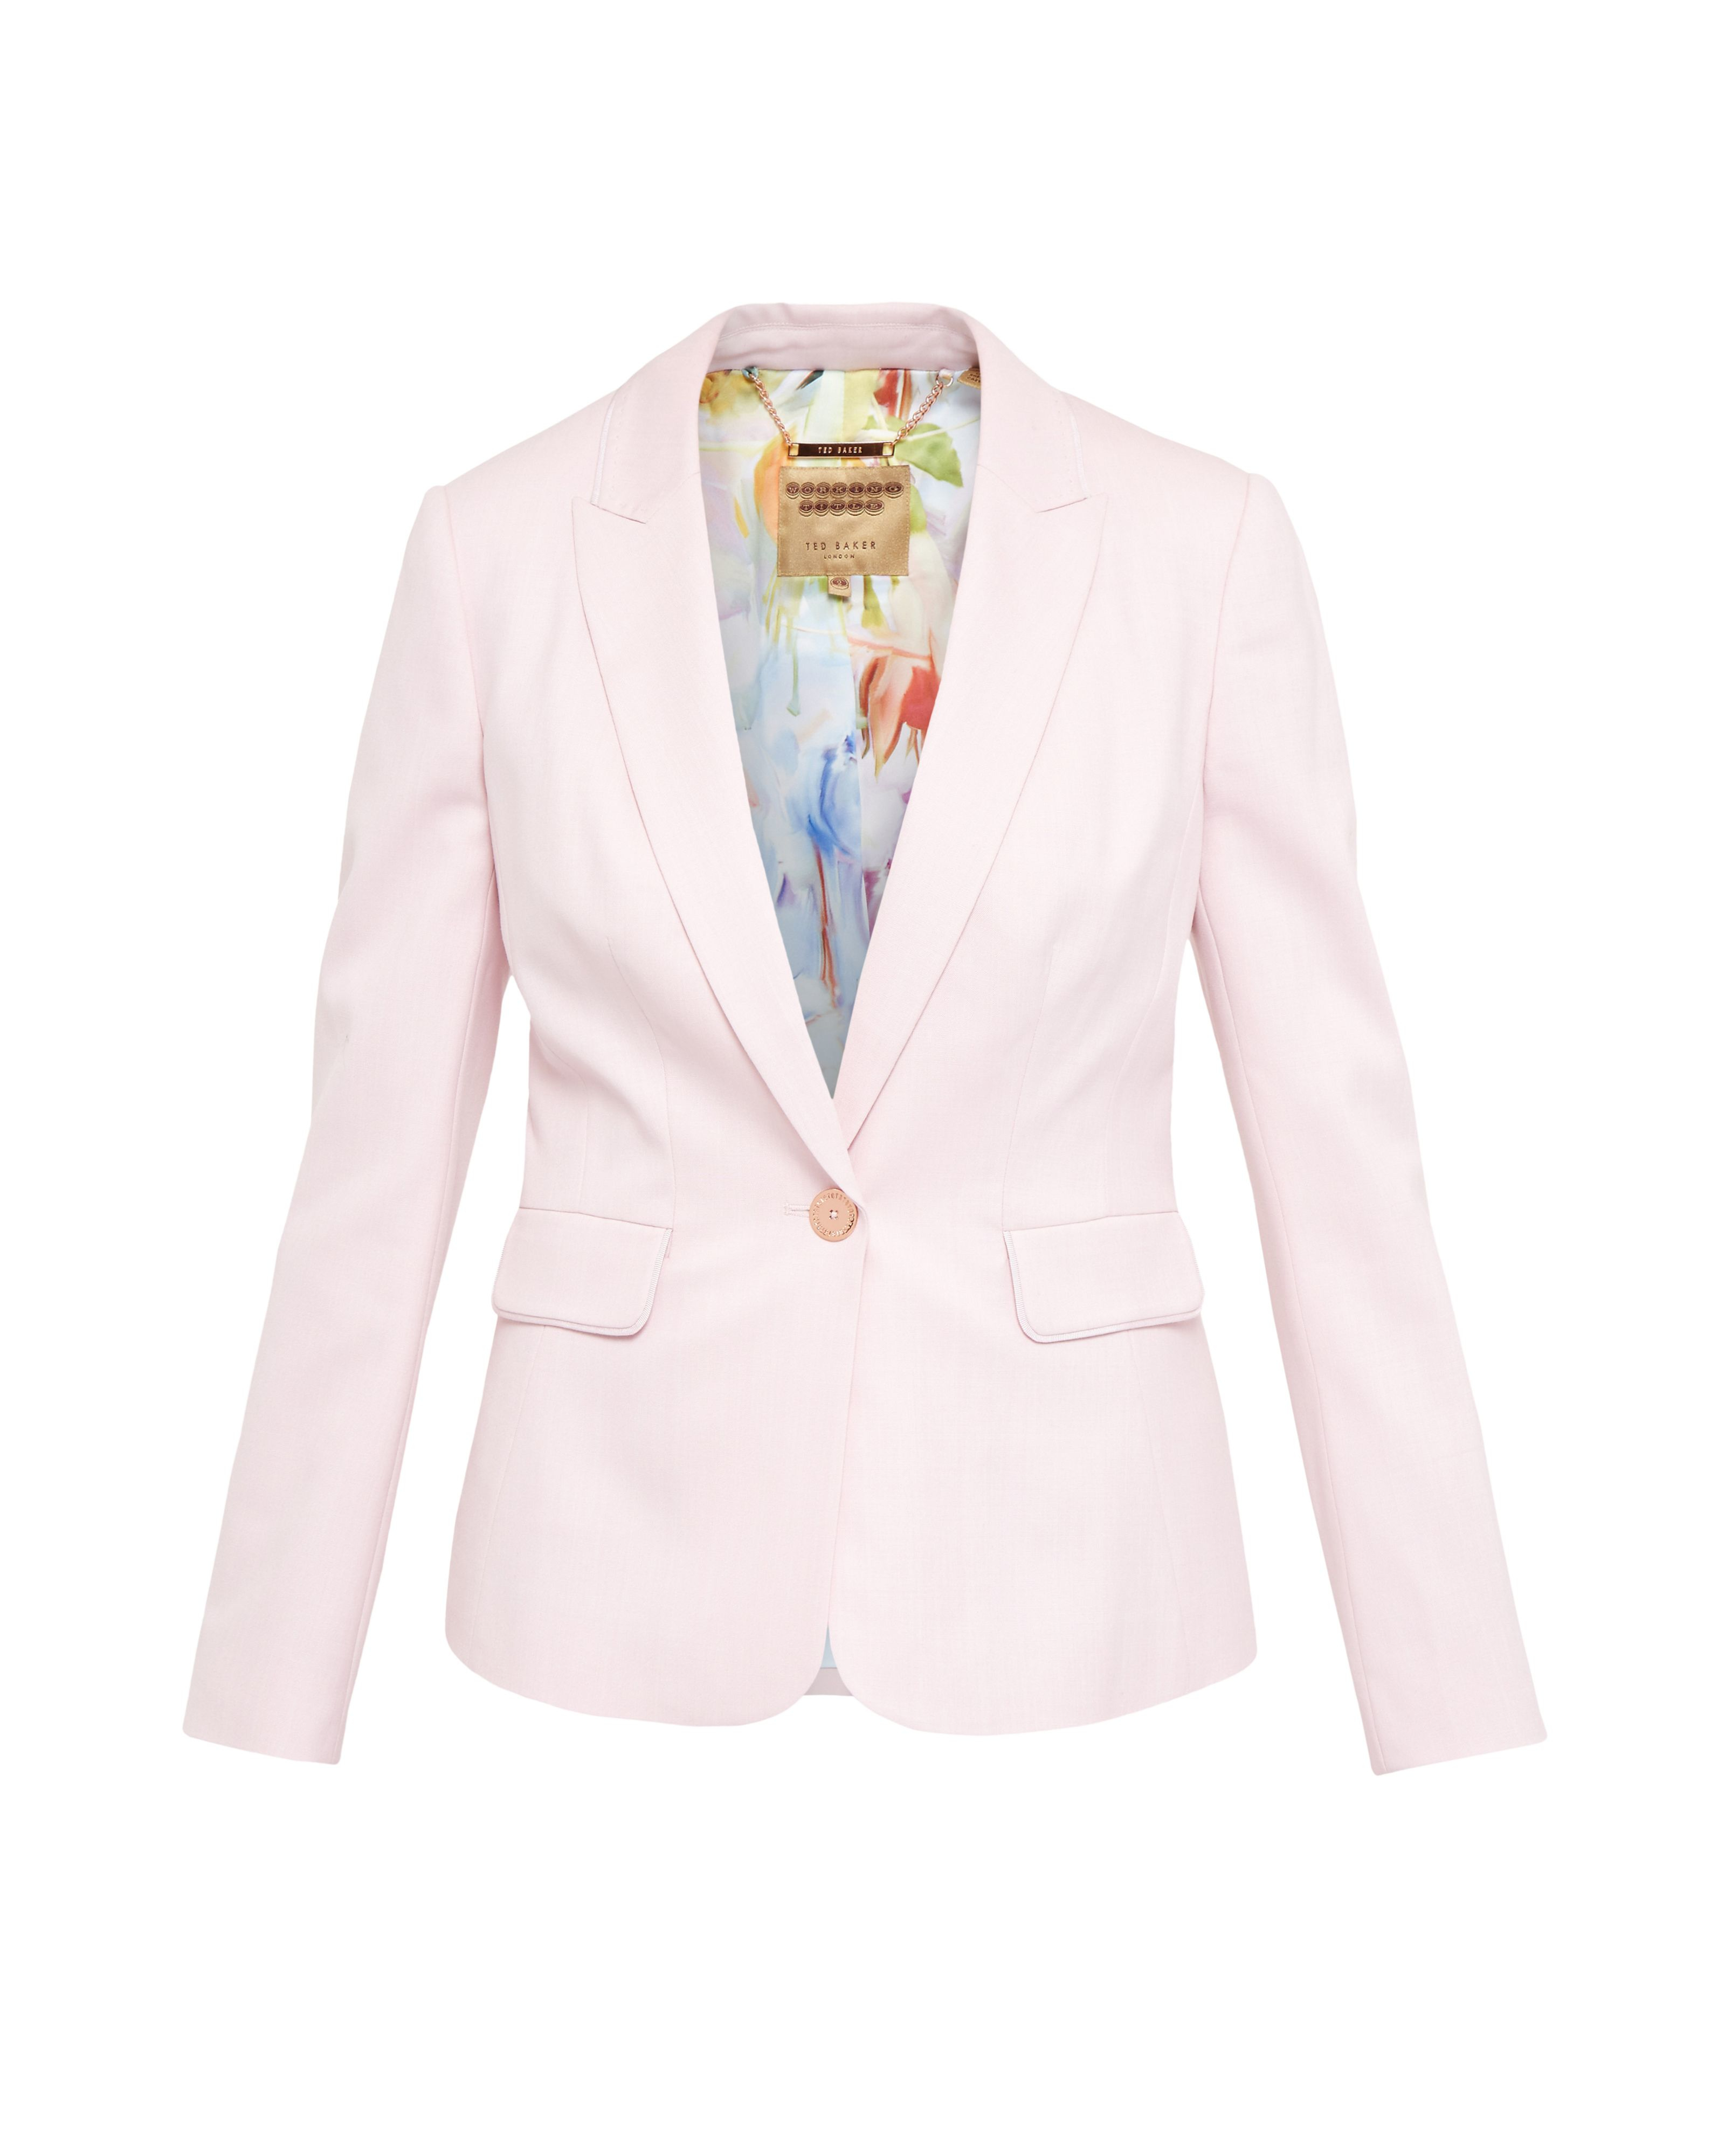 Ted baker Soreli Pastel Tailored Jacket in Pink   Lyst